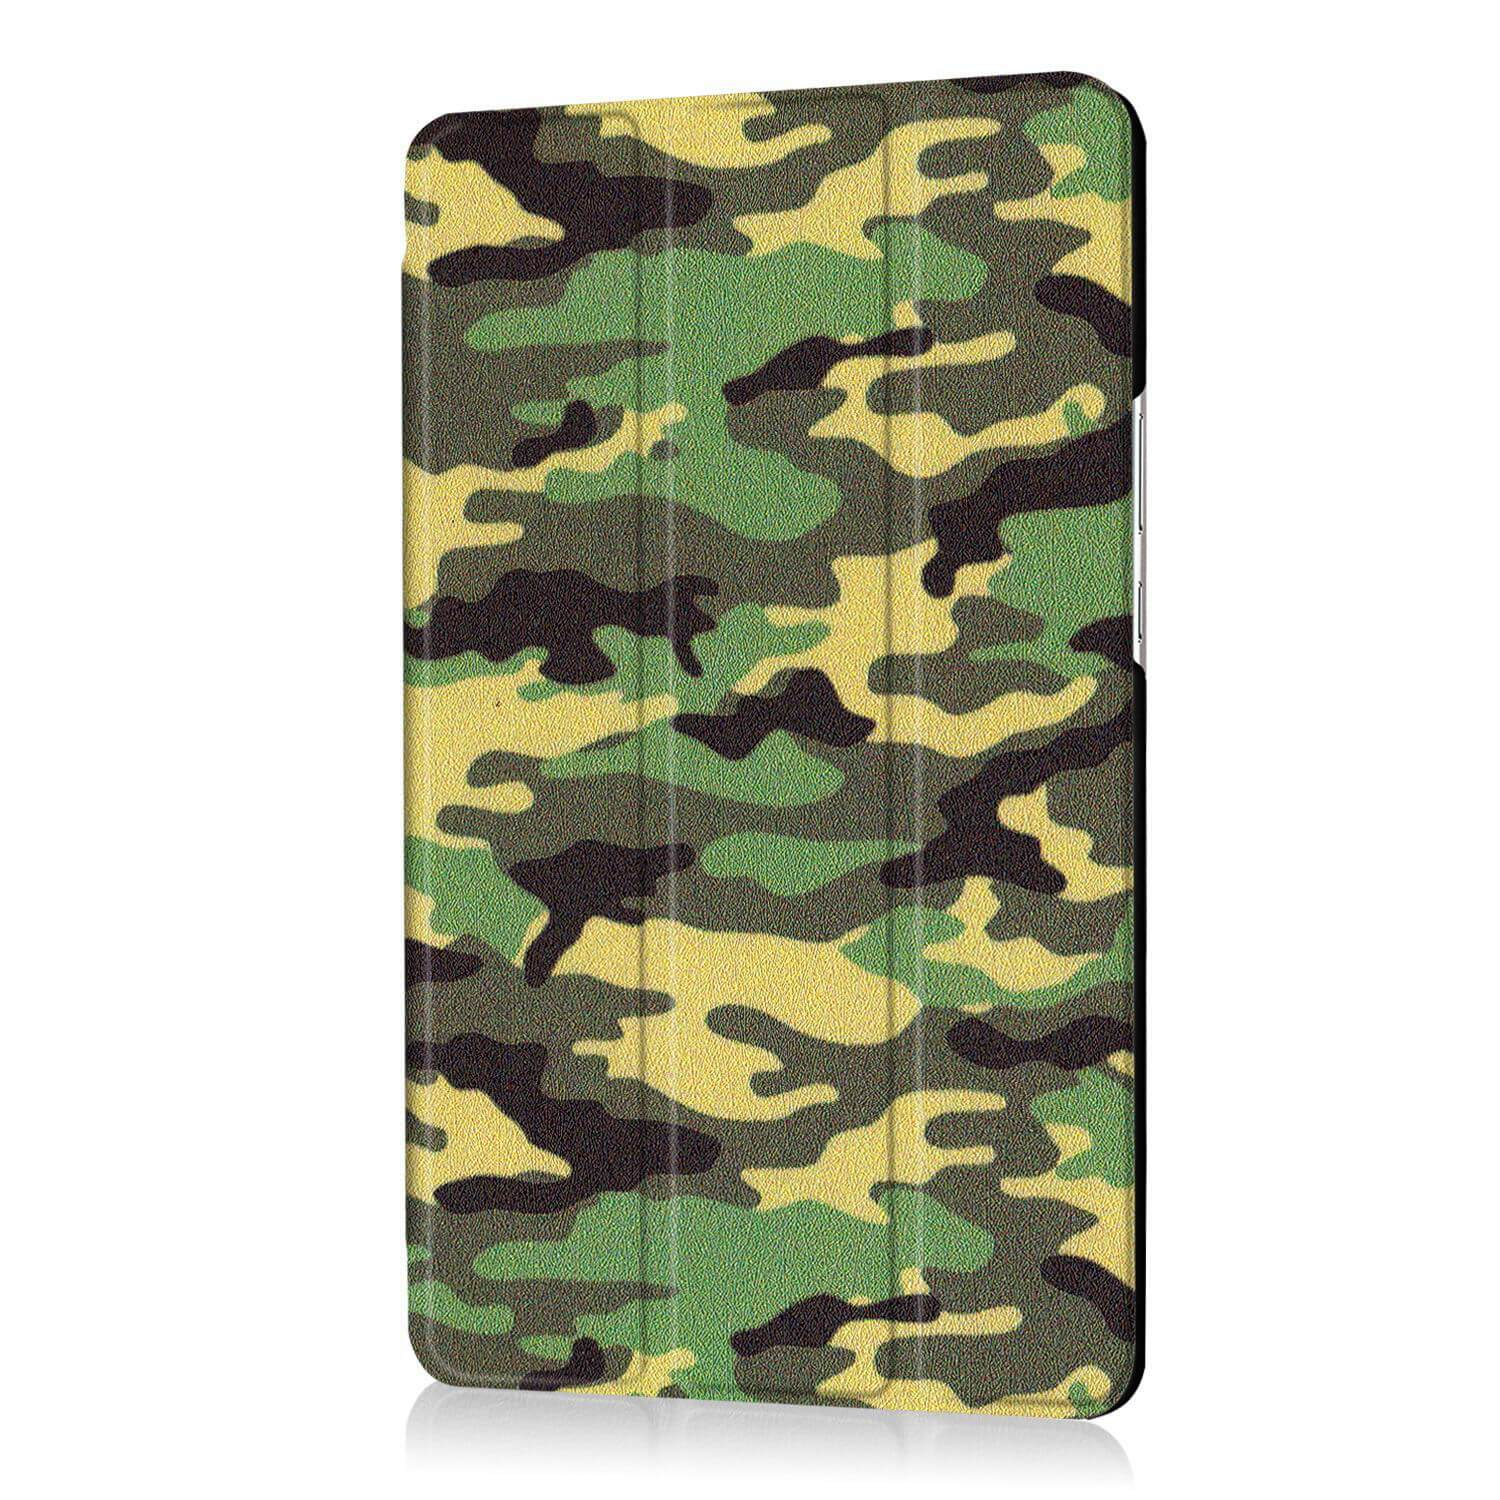 mediapad m3 bright painted case with pictures of paris butterflies and other Camo: